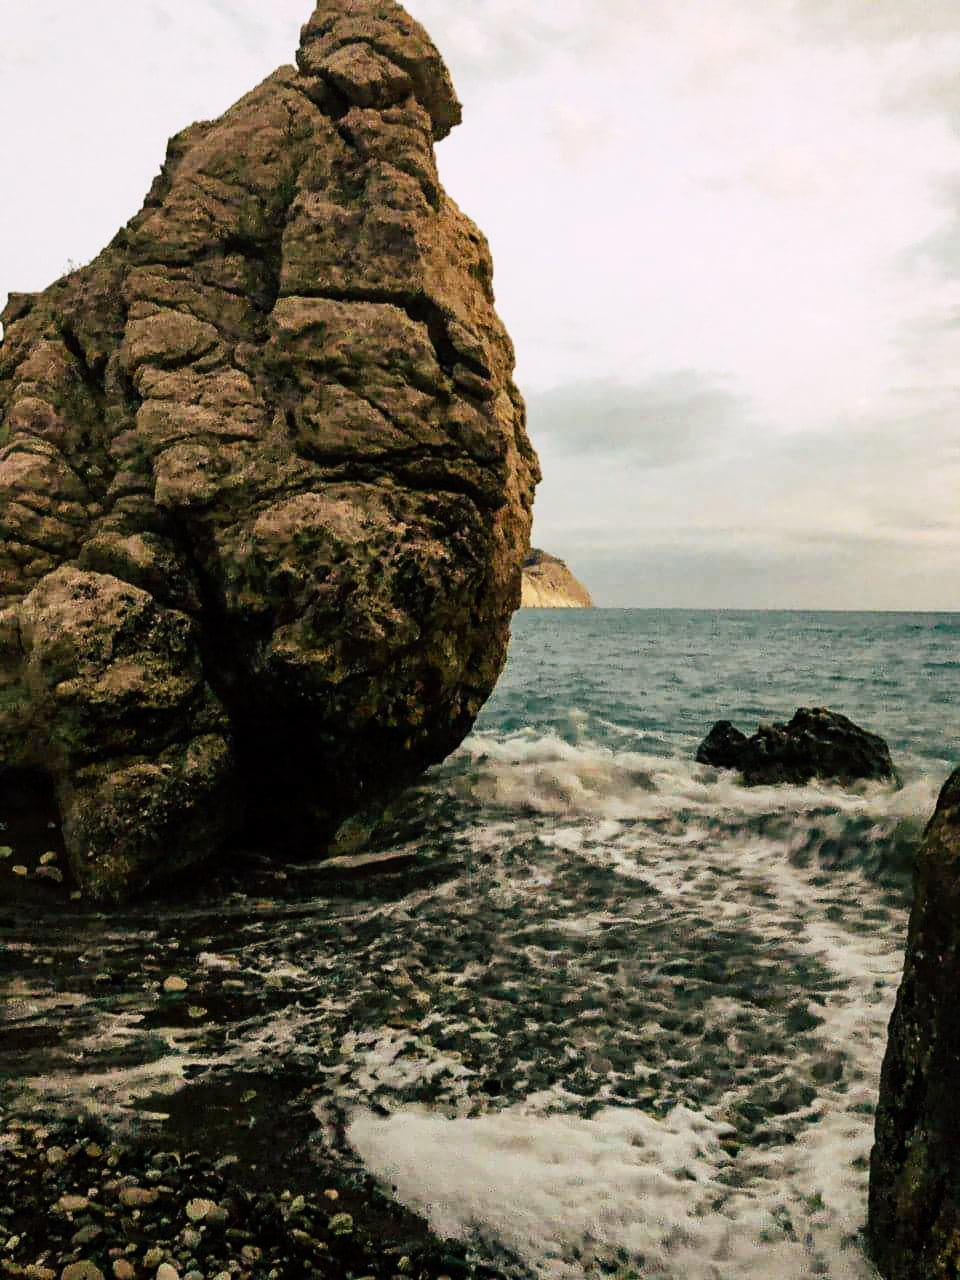 Visit the Rock of Aphrodite in Paphos